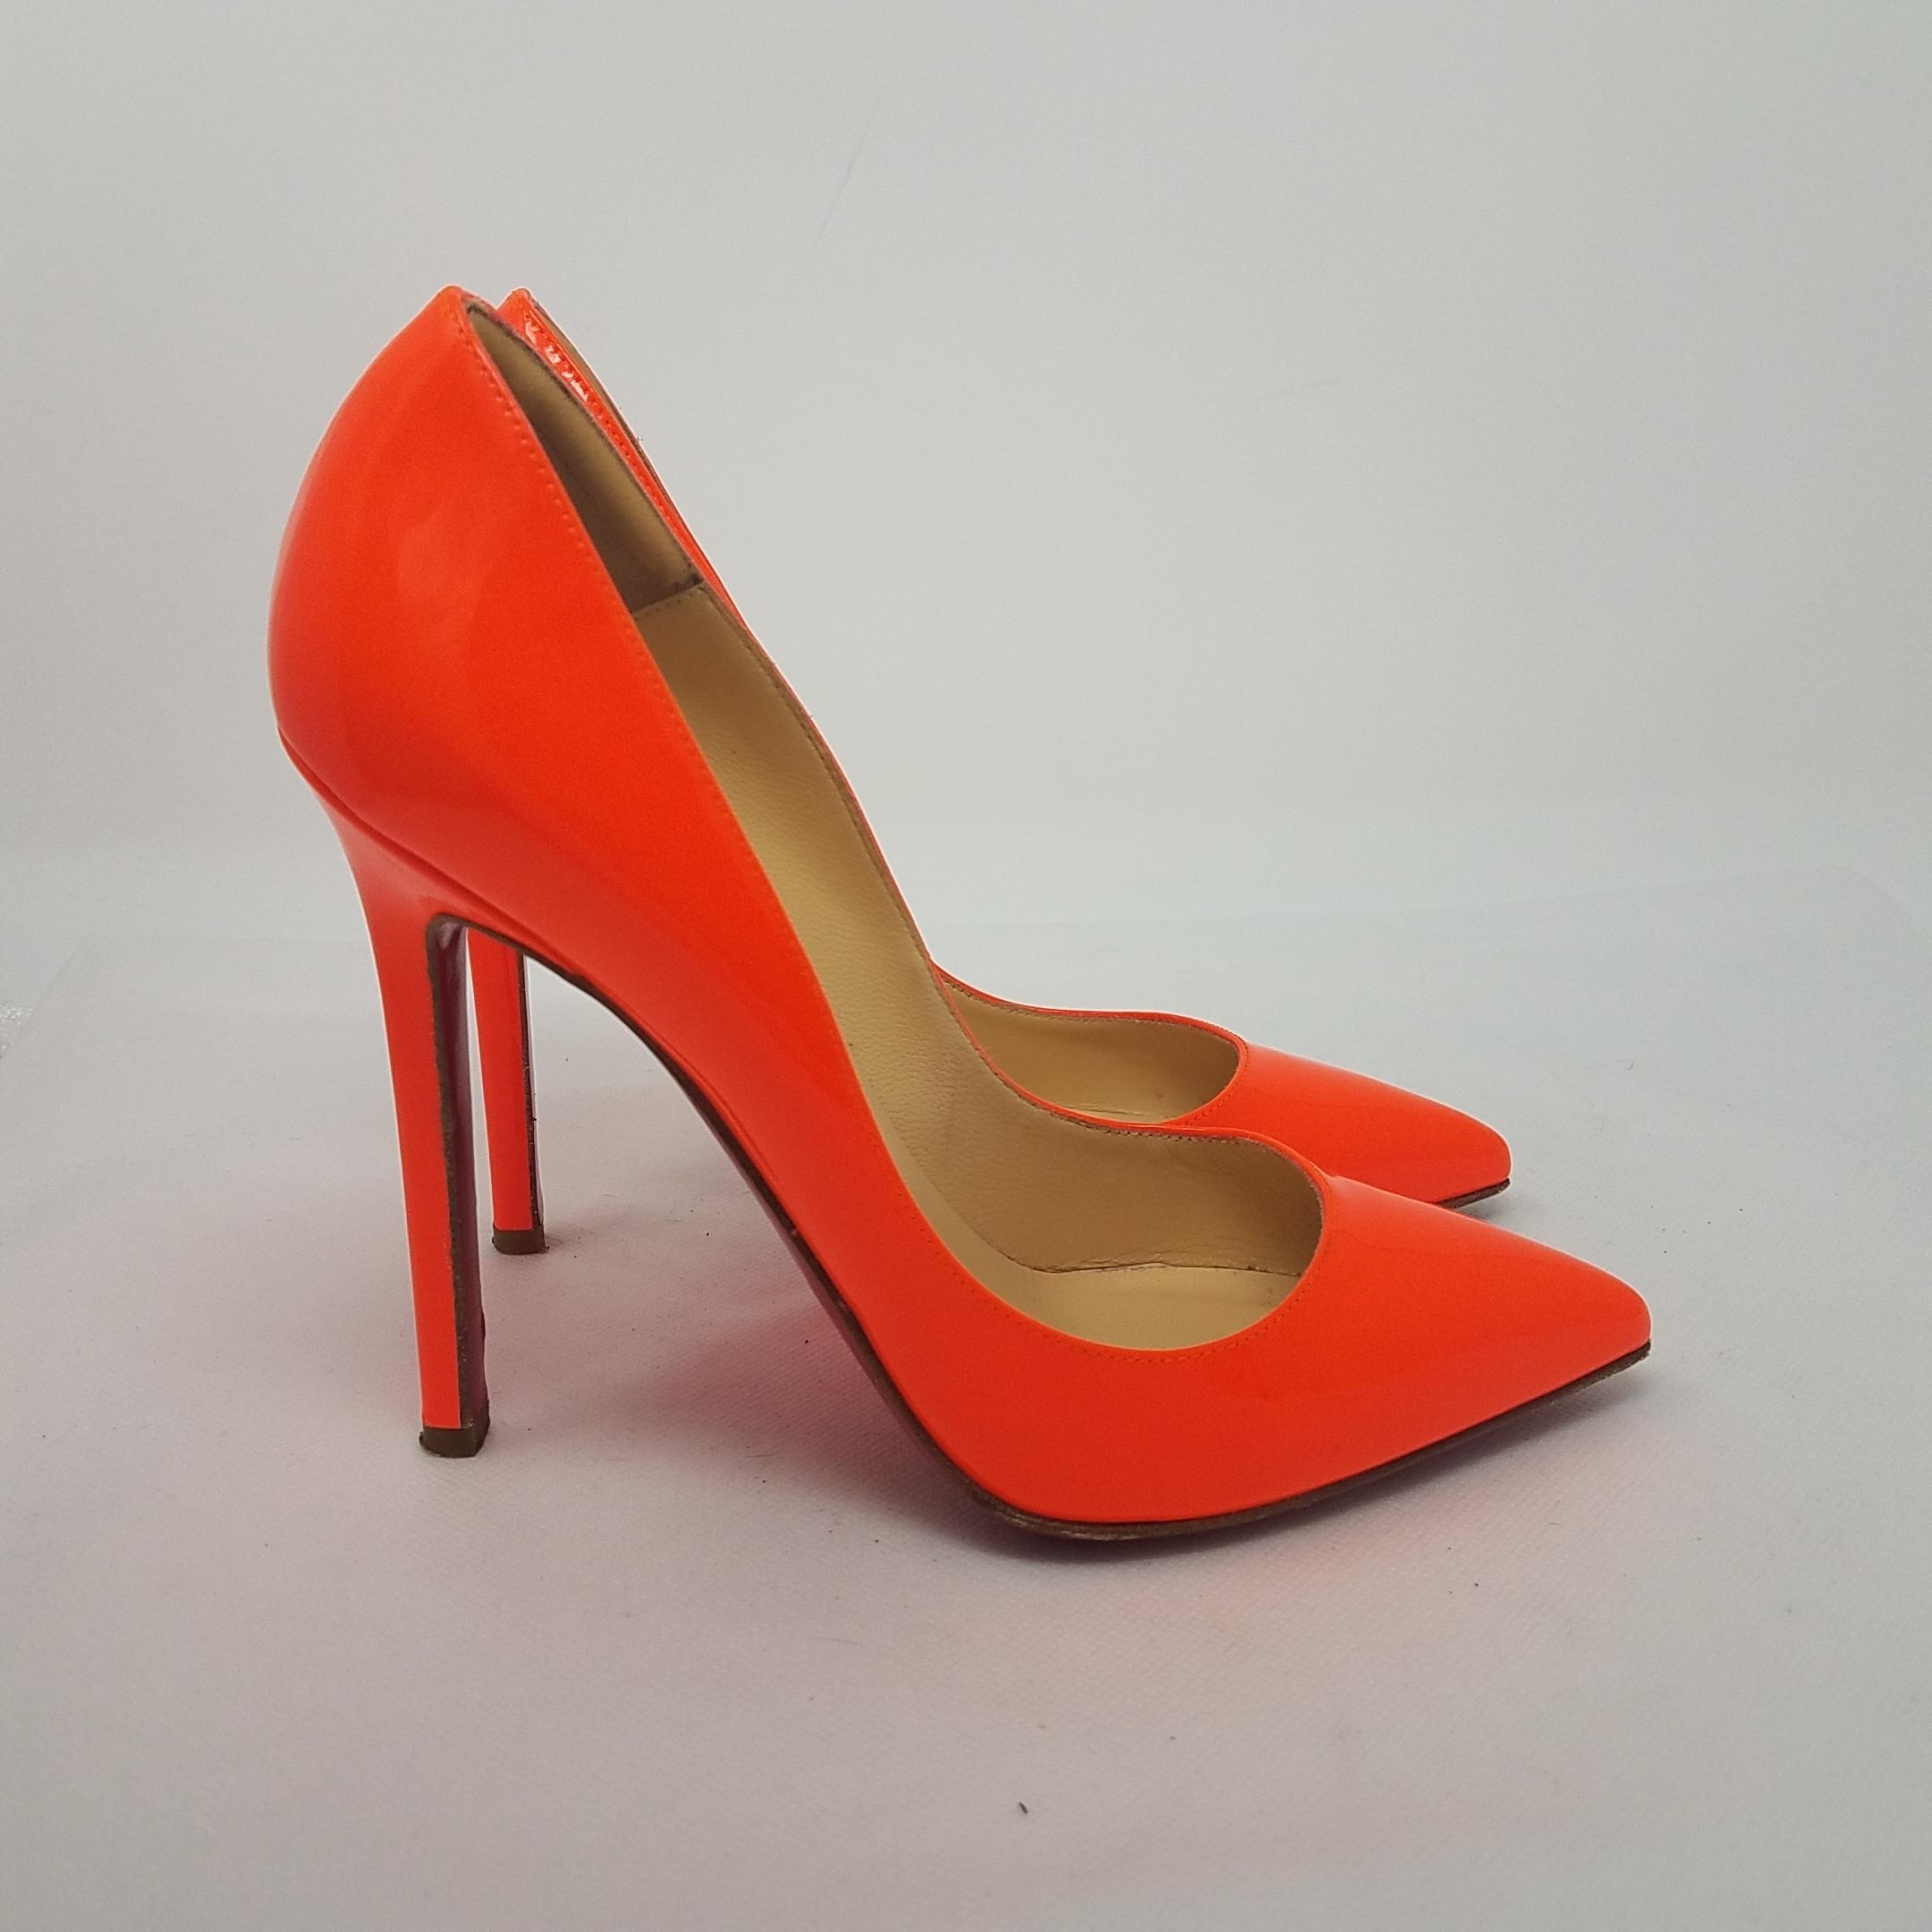 a1eb0da33cf ... low cost christian louboutin neon patent leather pointed toe so kate  pigalle orange pumps d1b46 224e1